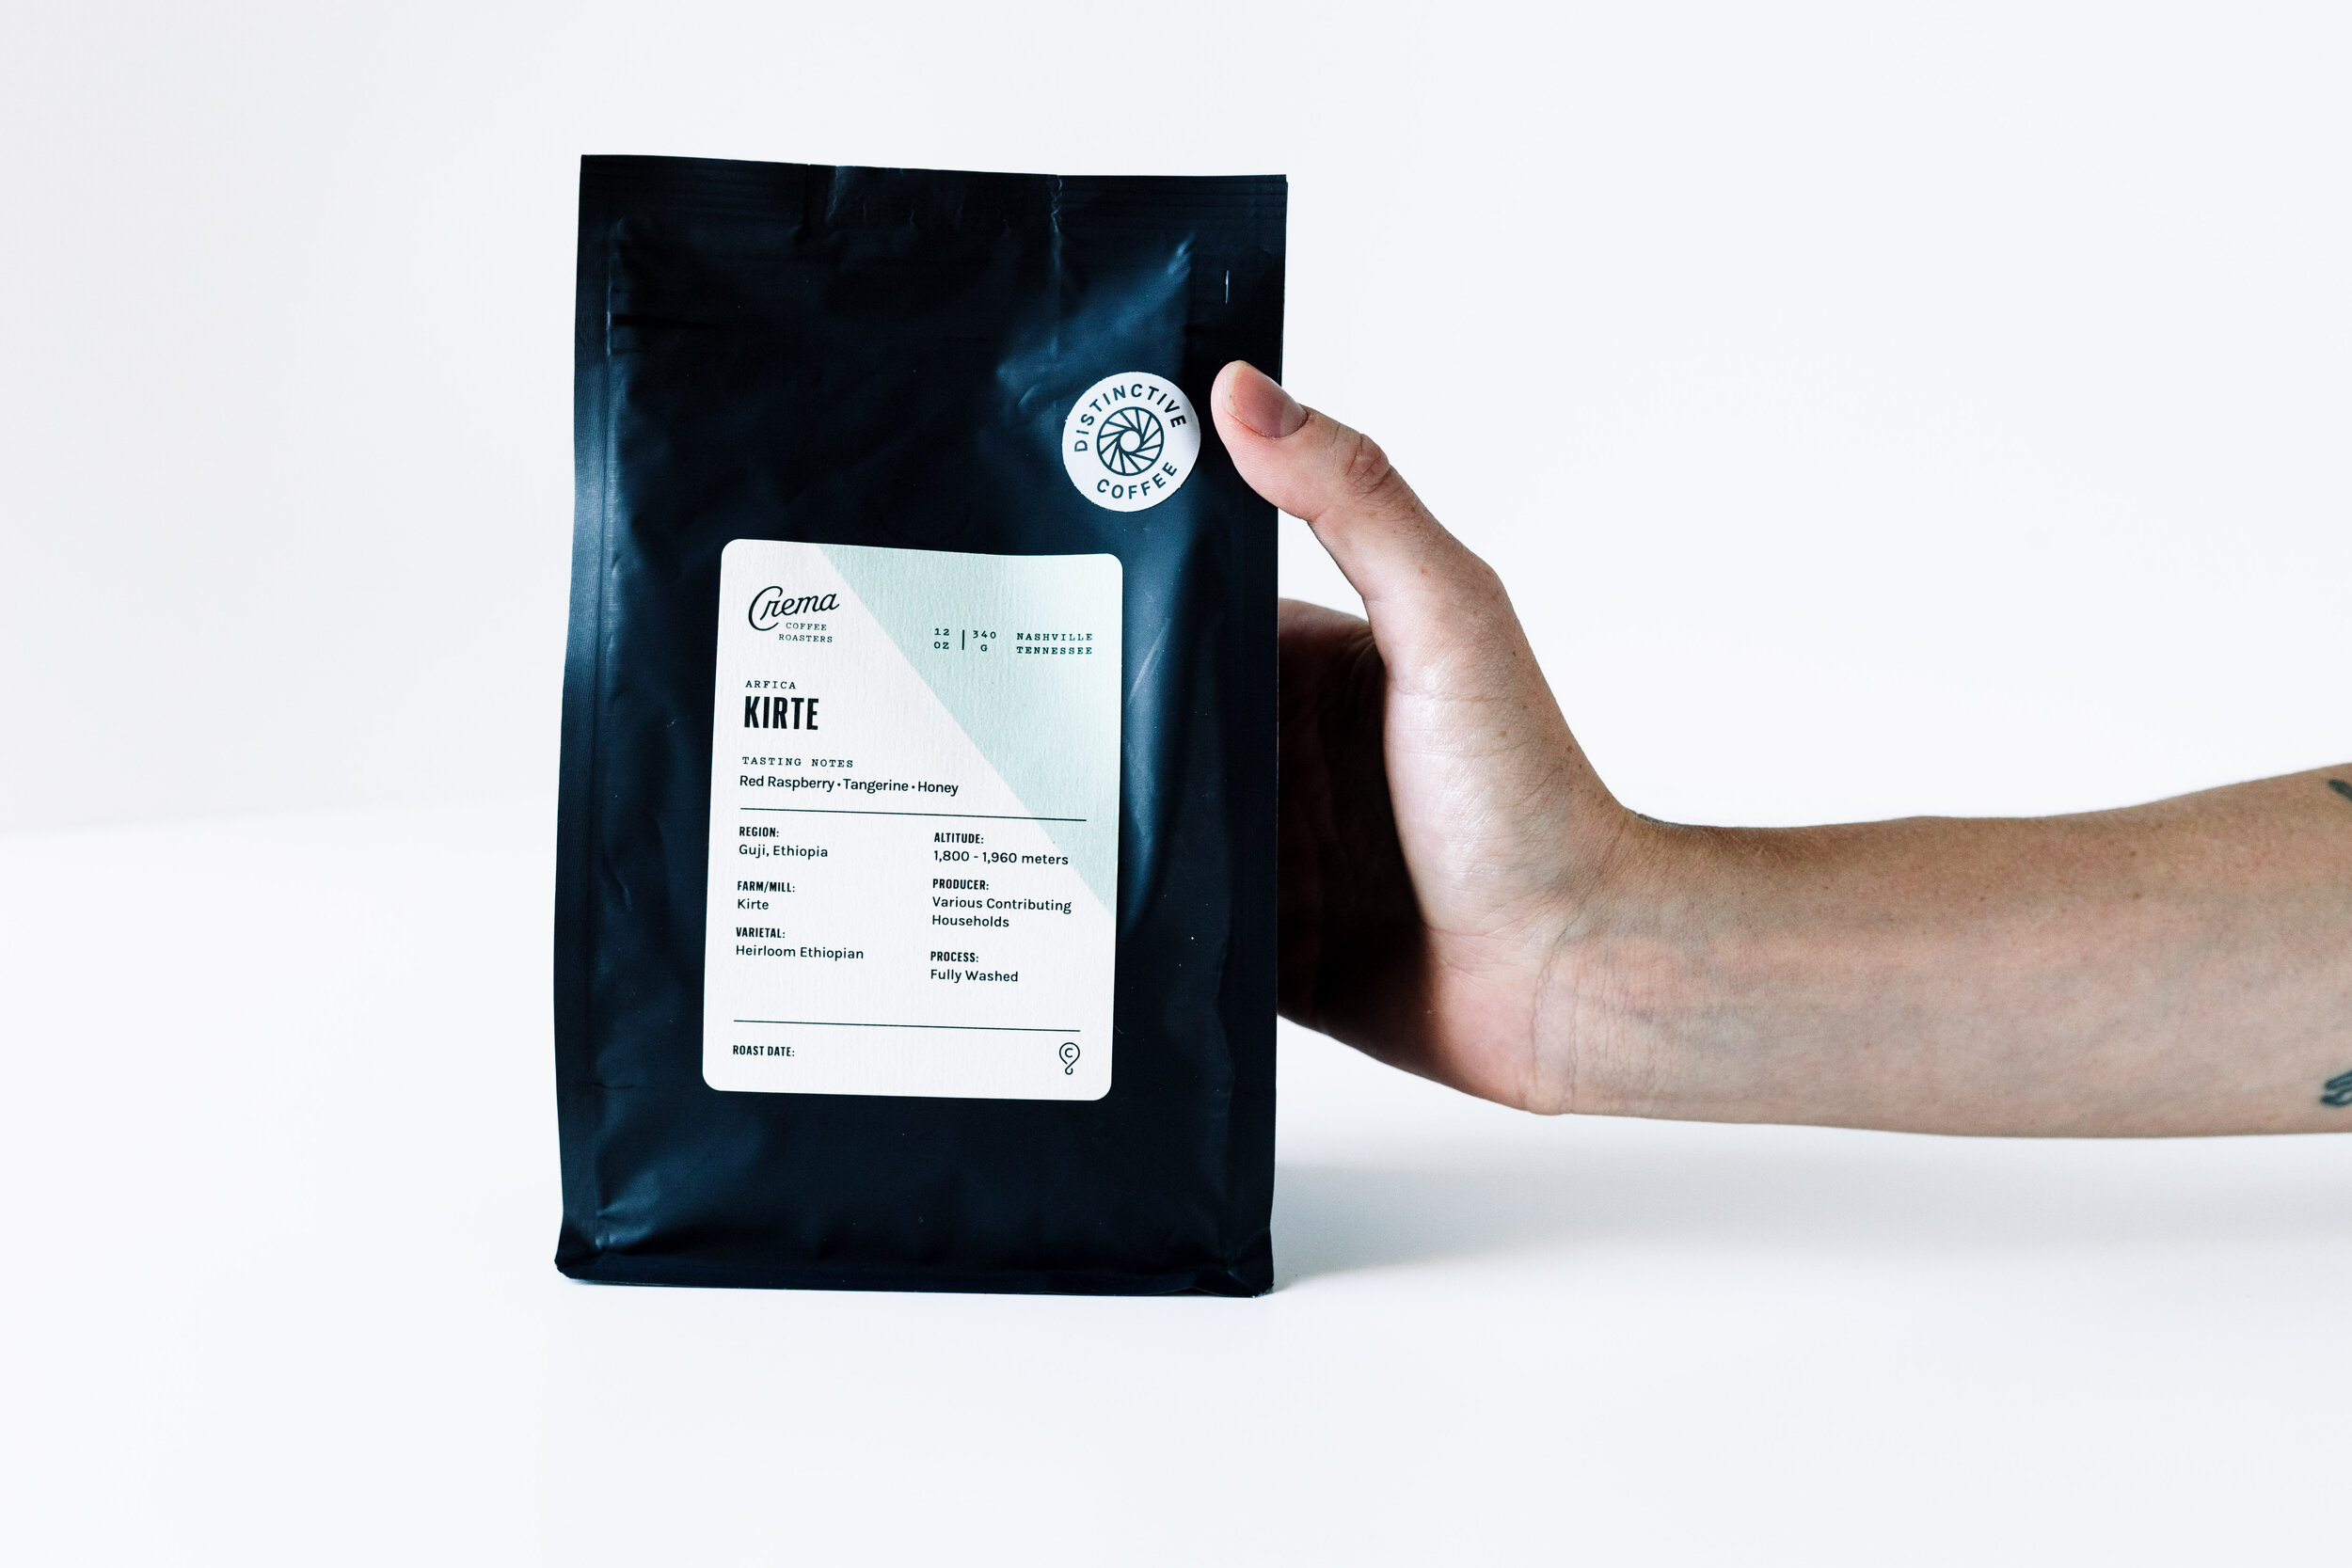 - KIRTEOn every bag of coffee we've produced, there's a small info section that covers many details.